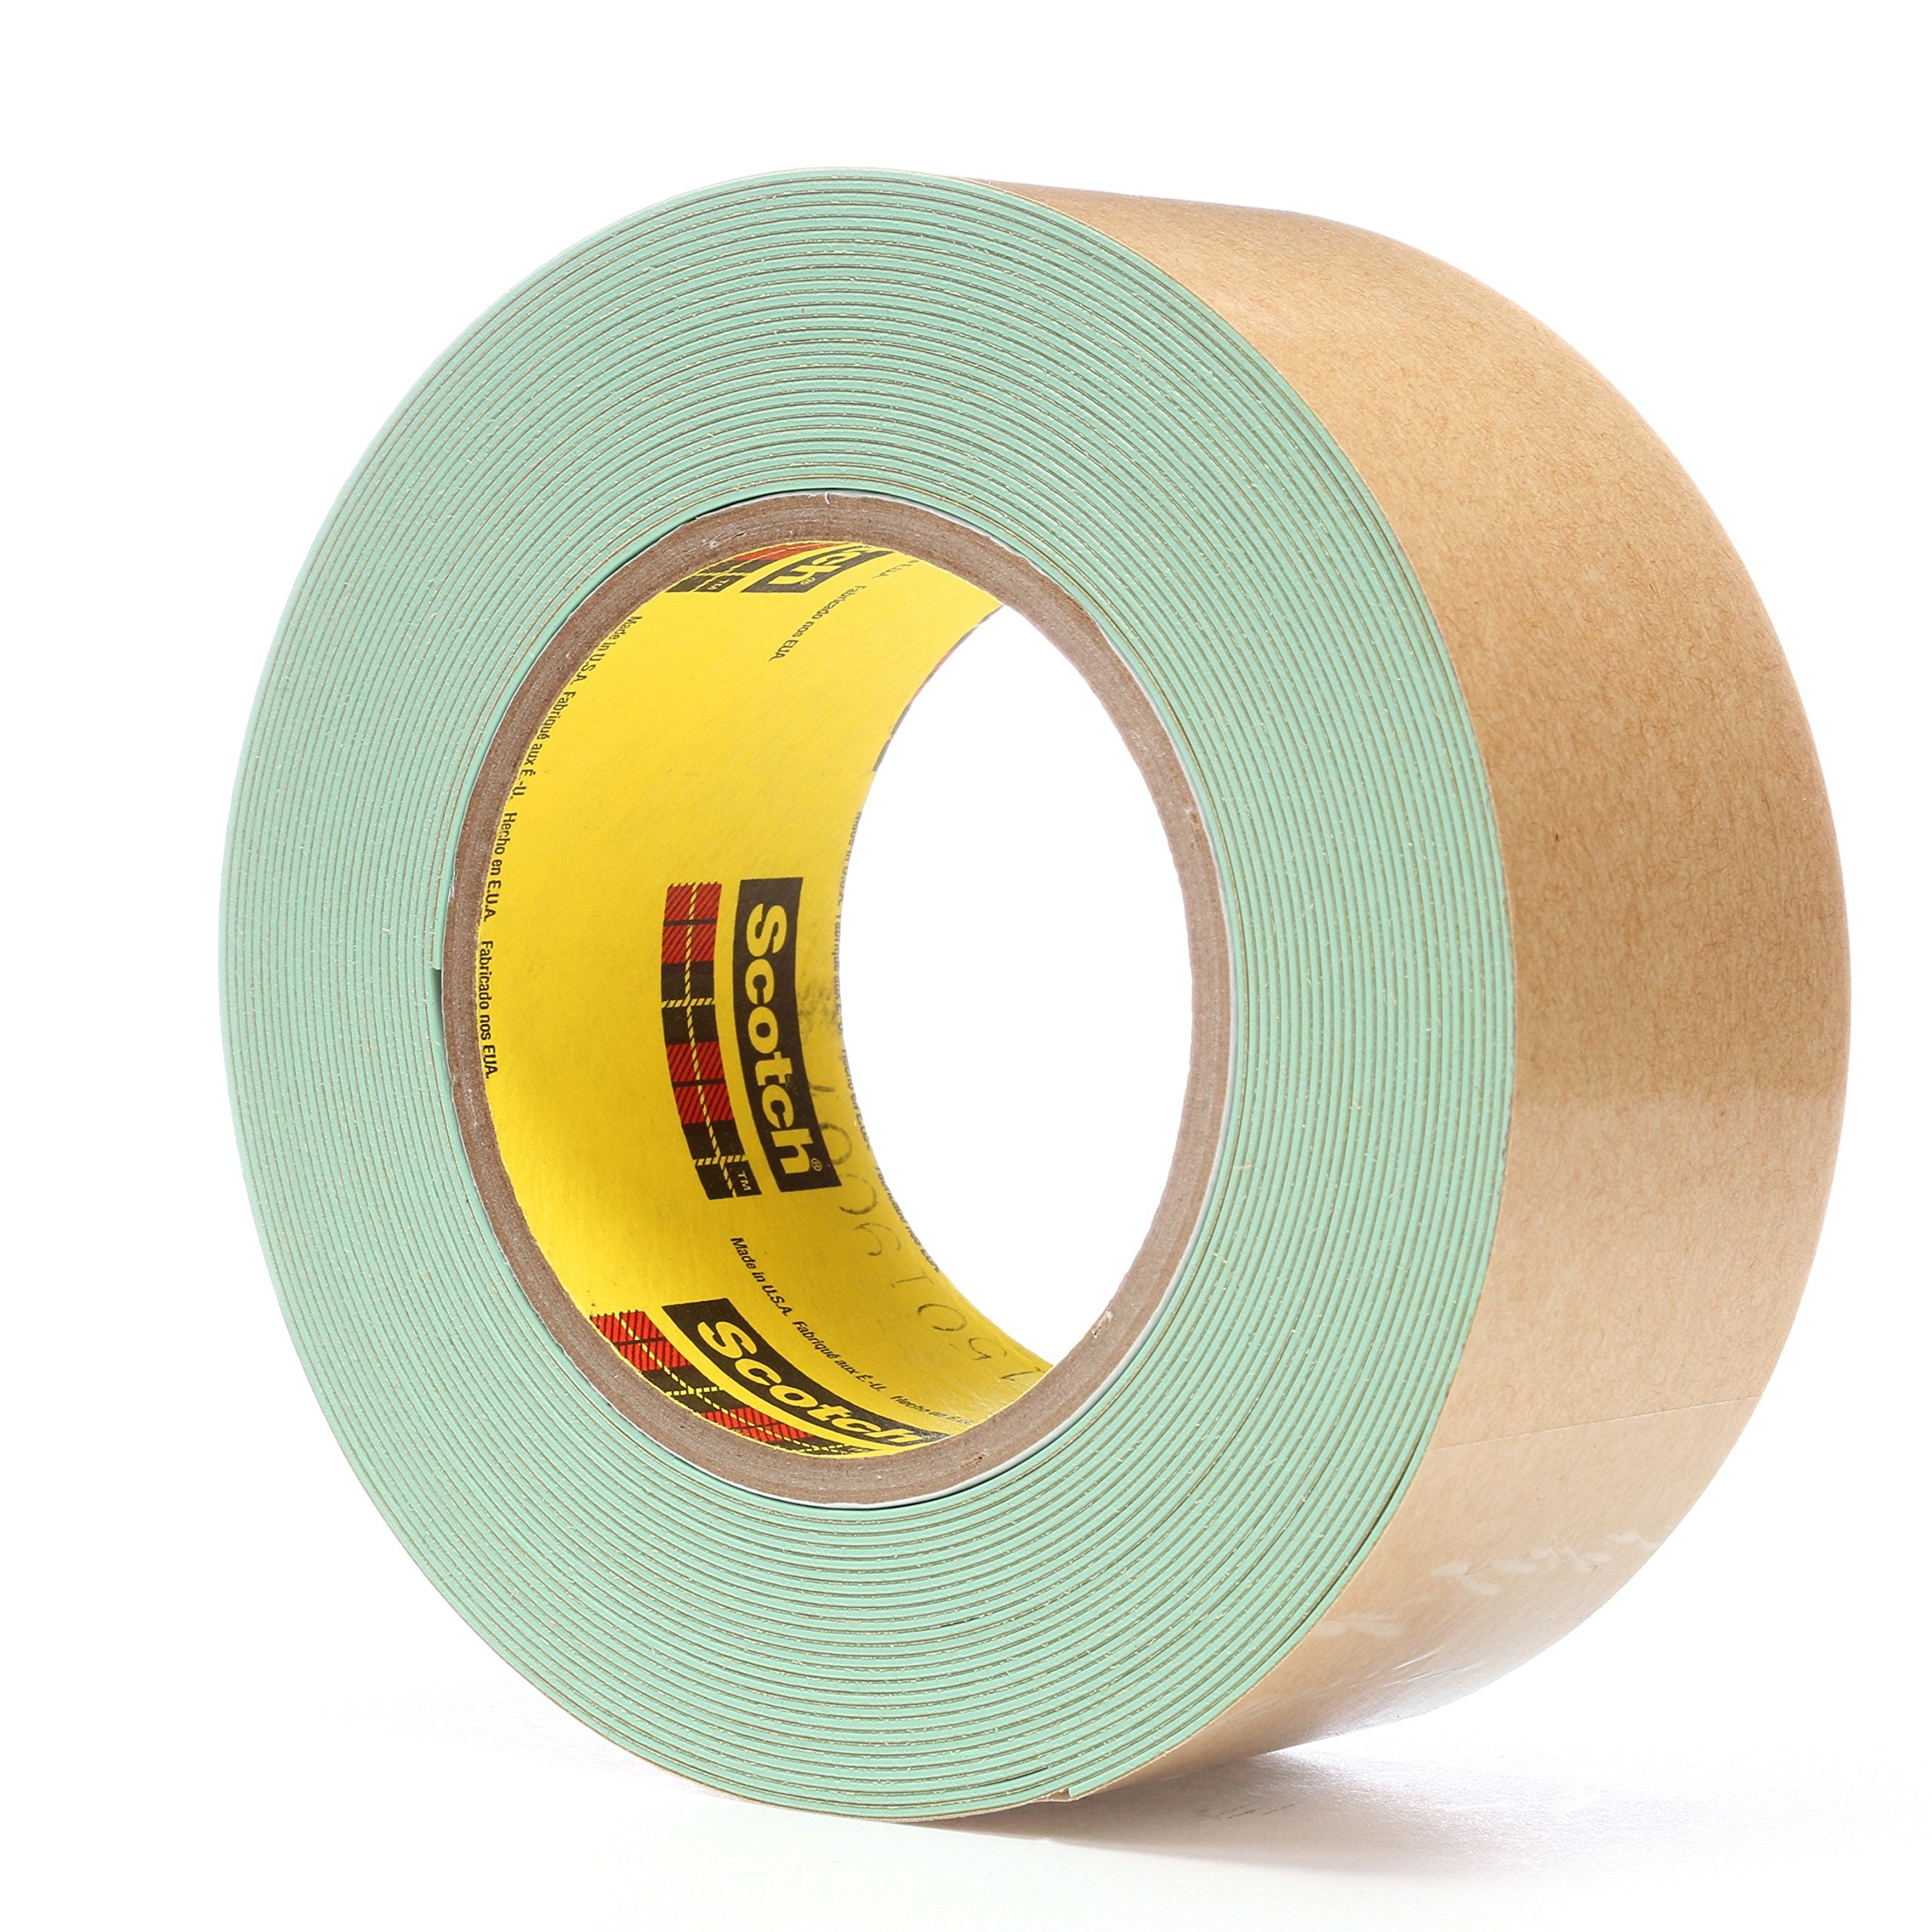 3M Impact Stripping Tape 500, 2'' x 10 yd 33 mil, Green (Pack of 6) by 3M (Image #2)